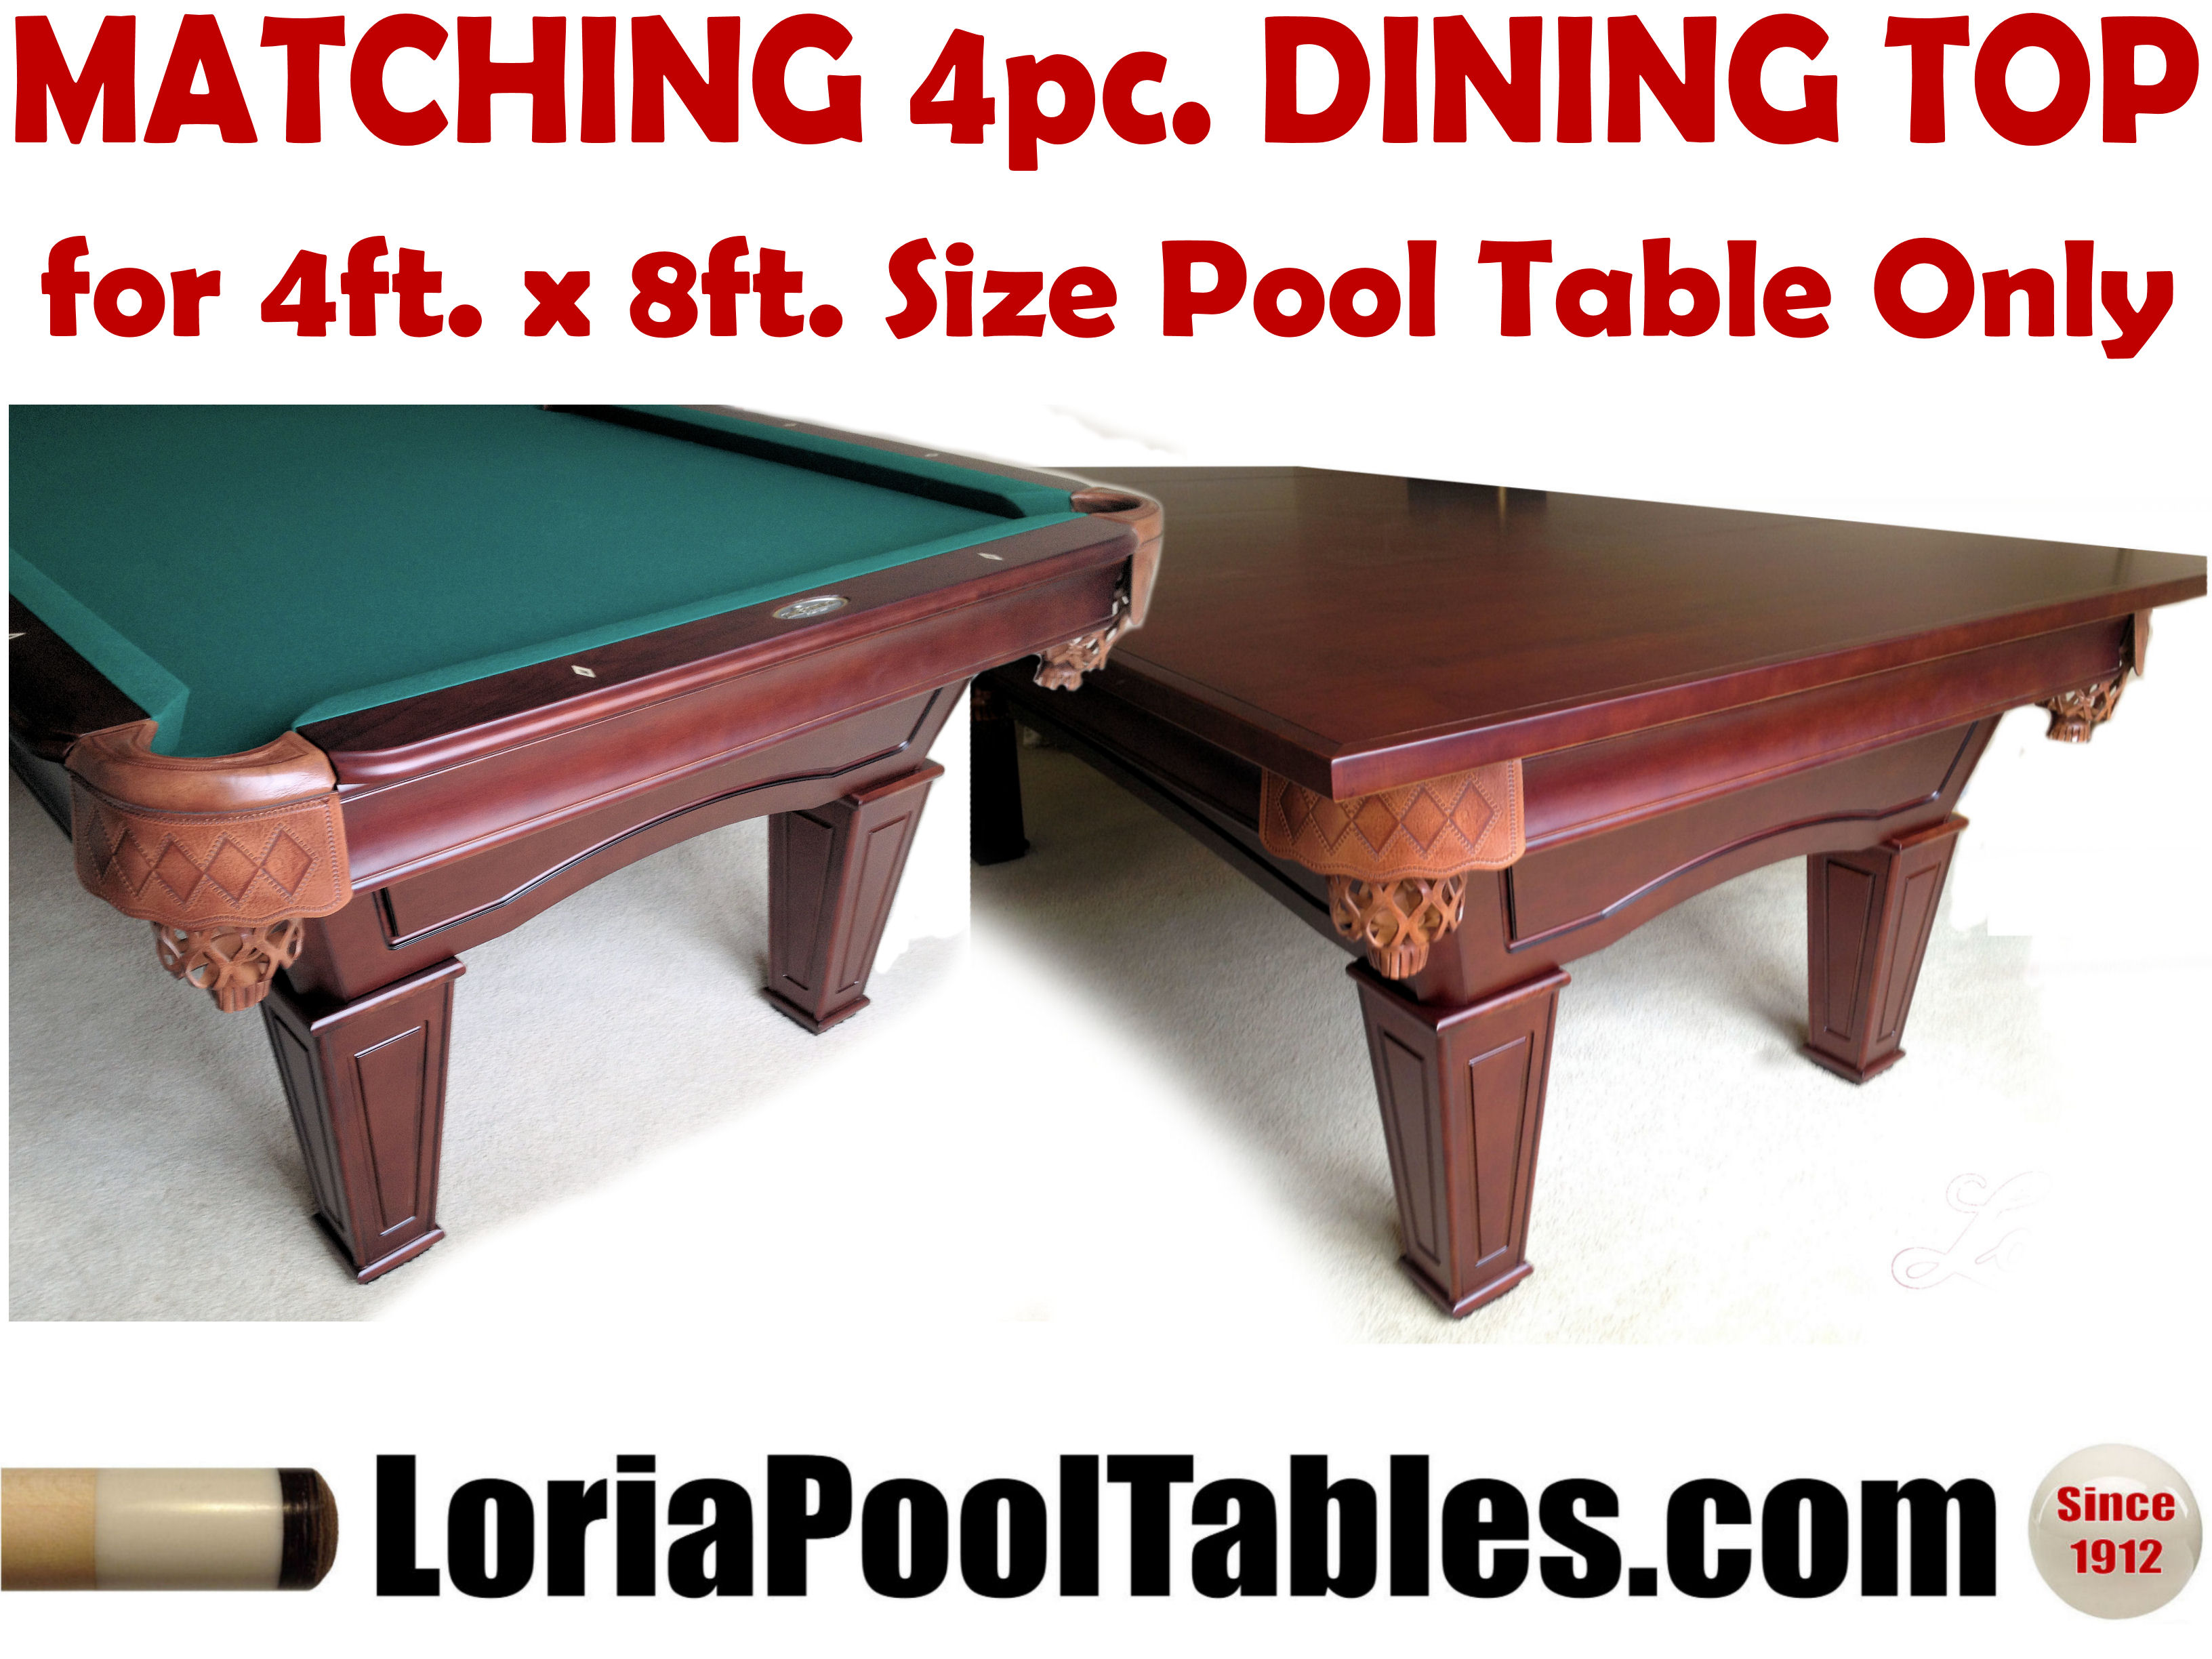 4pcConversion Dining Top Loria Awards